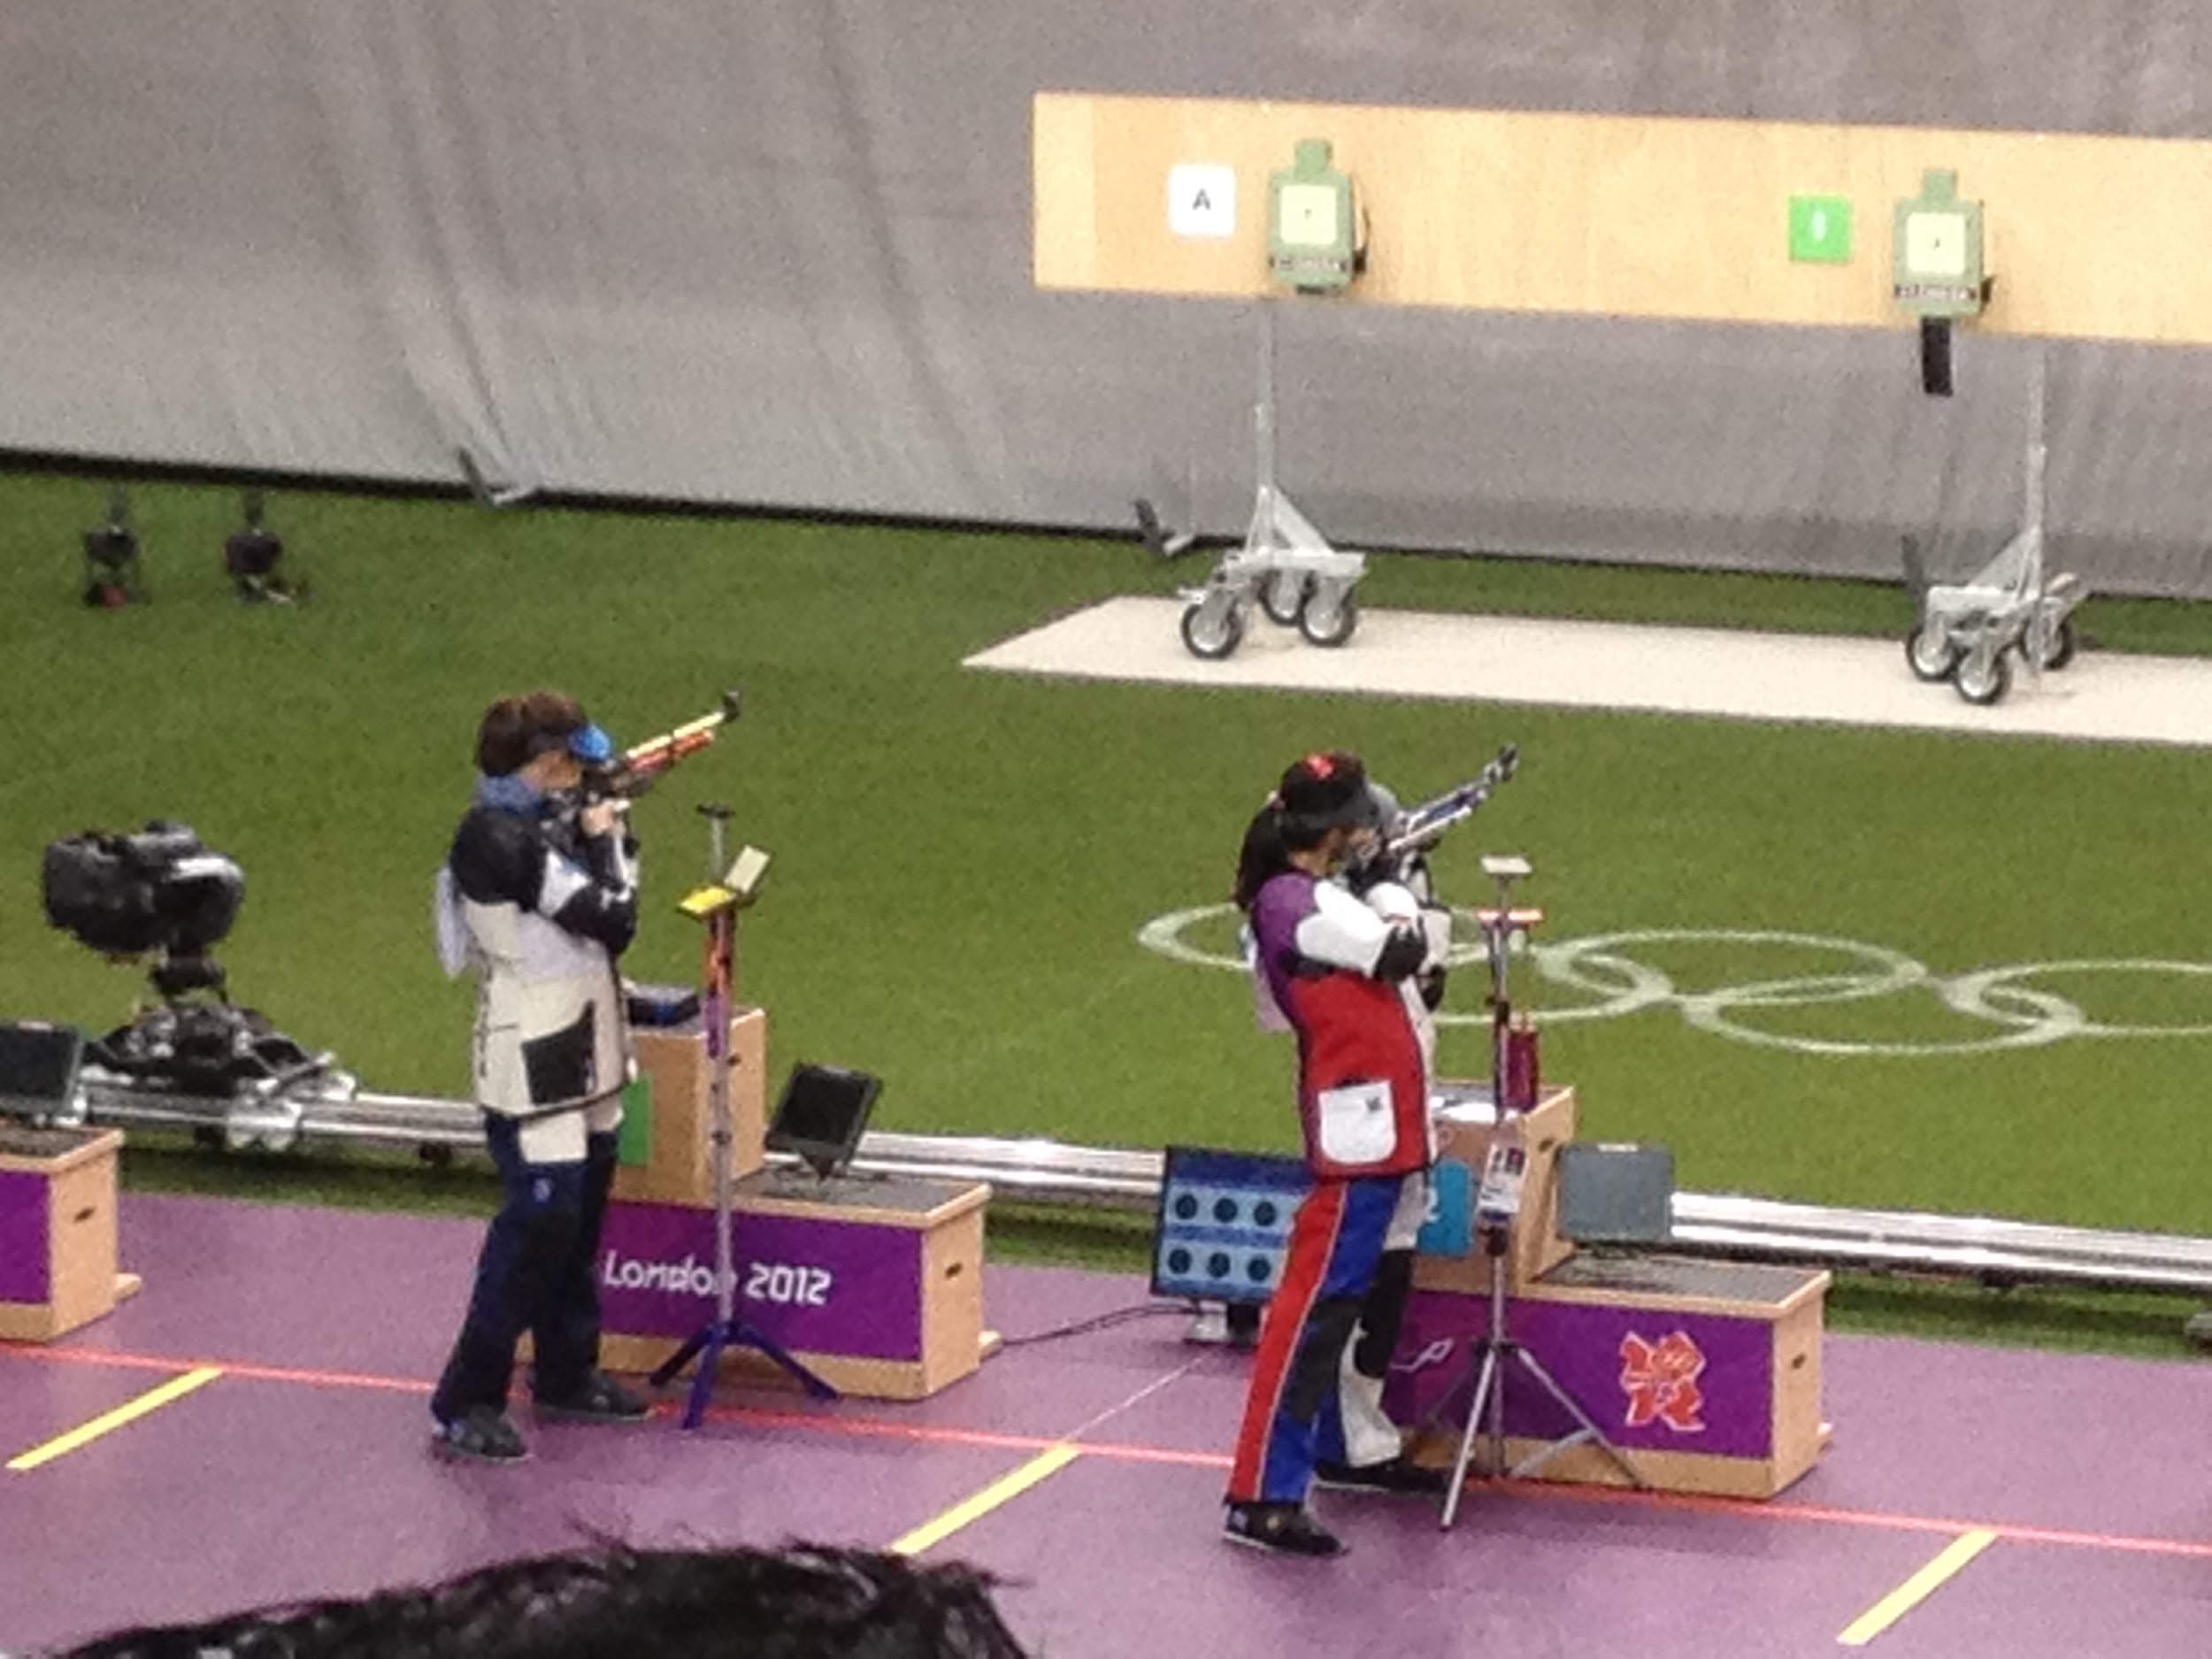 Female athletes competing during the London 2012 Olympic Games